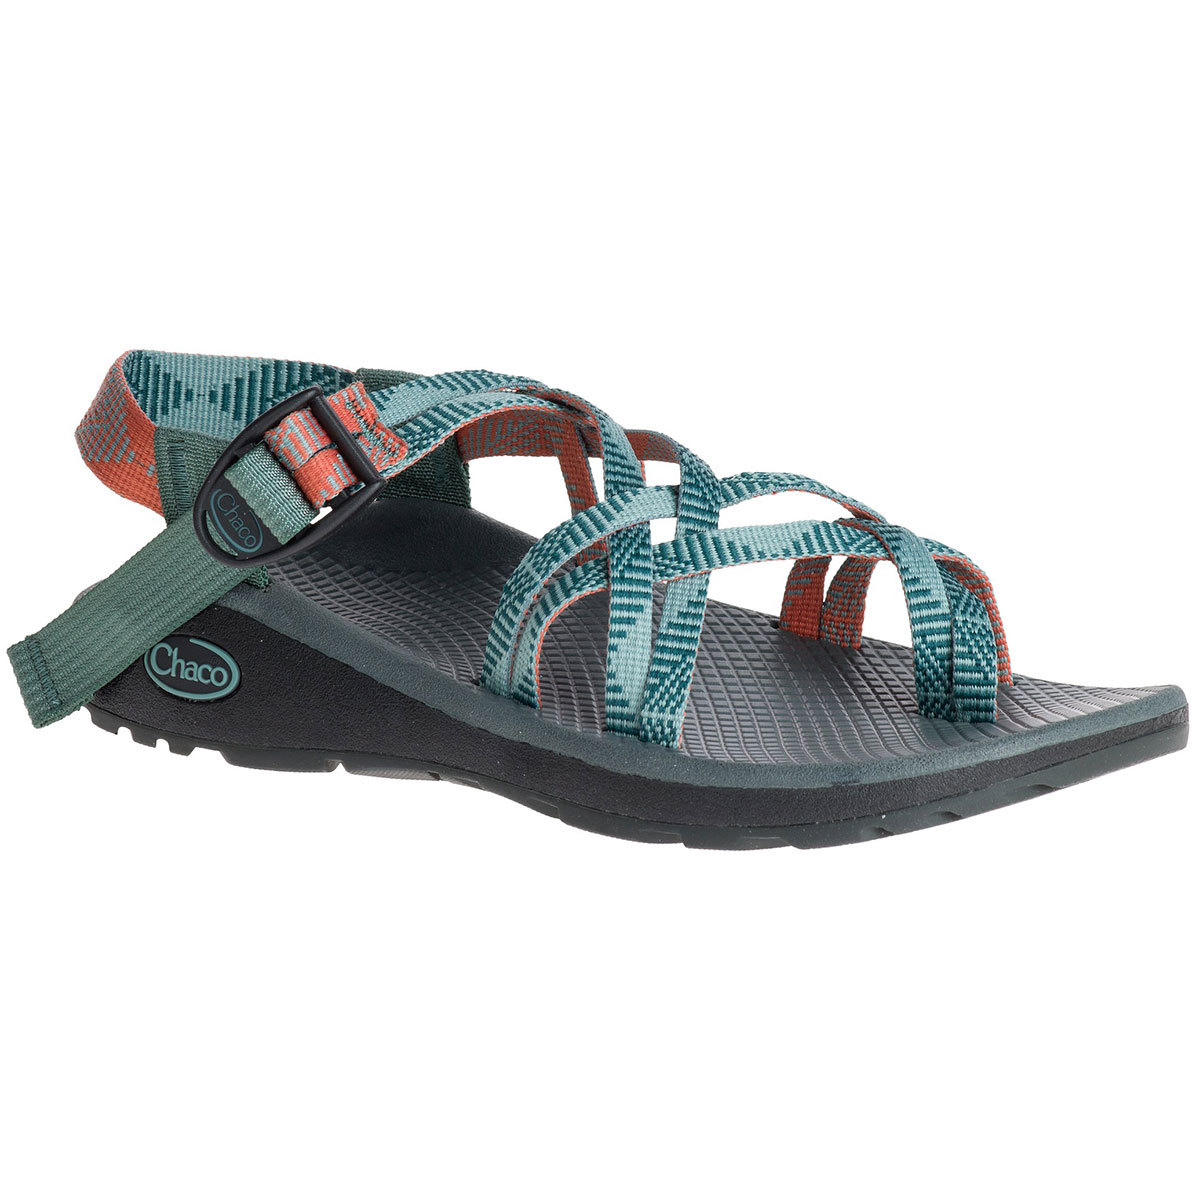 Chaco Women's Z/cloud X2 Sandals - Green, 9